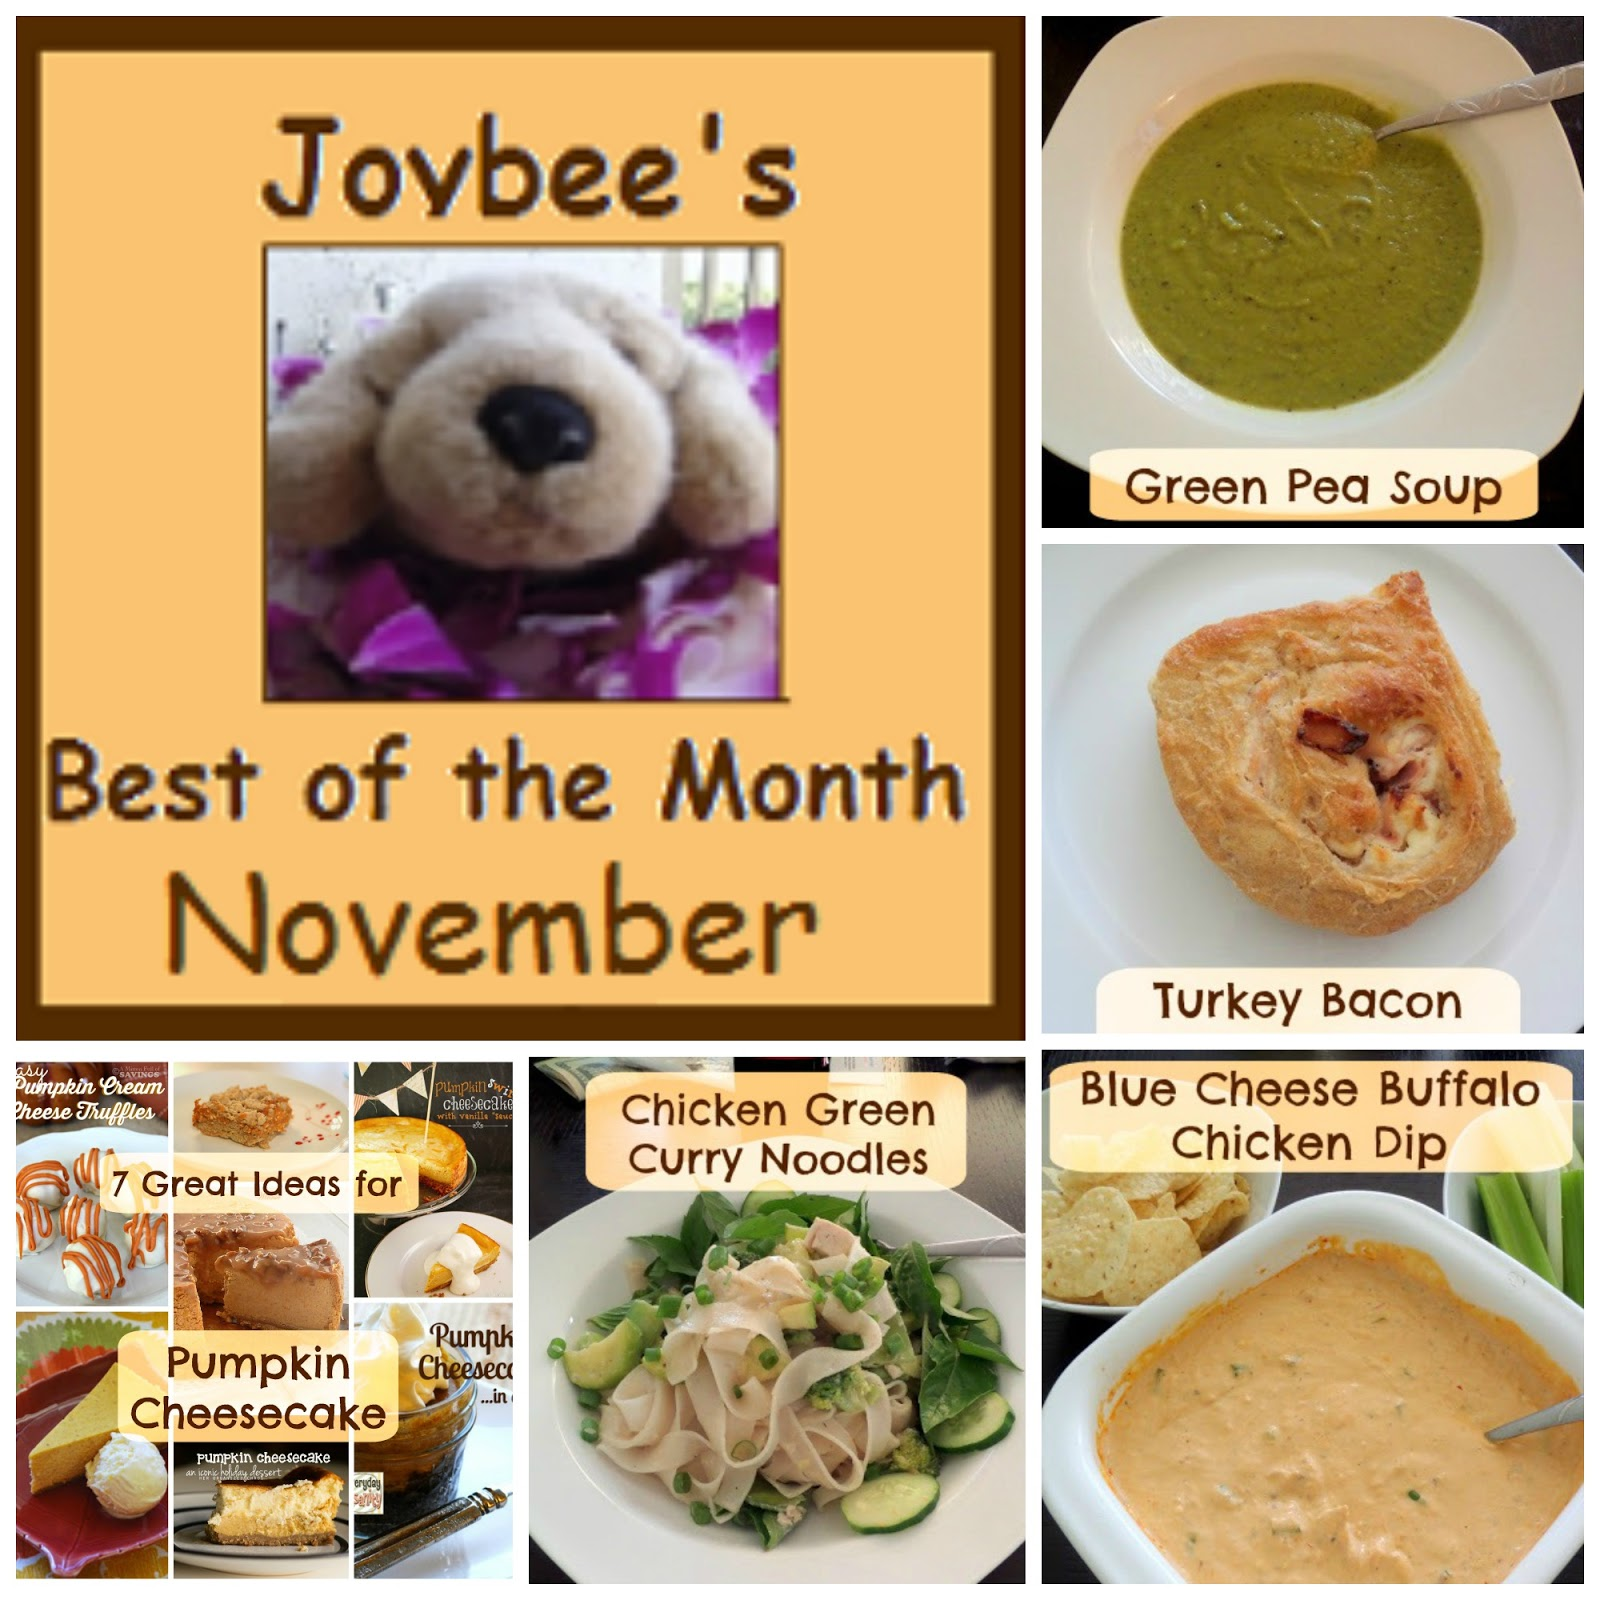 Best of the Month November 2014